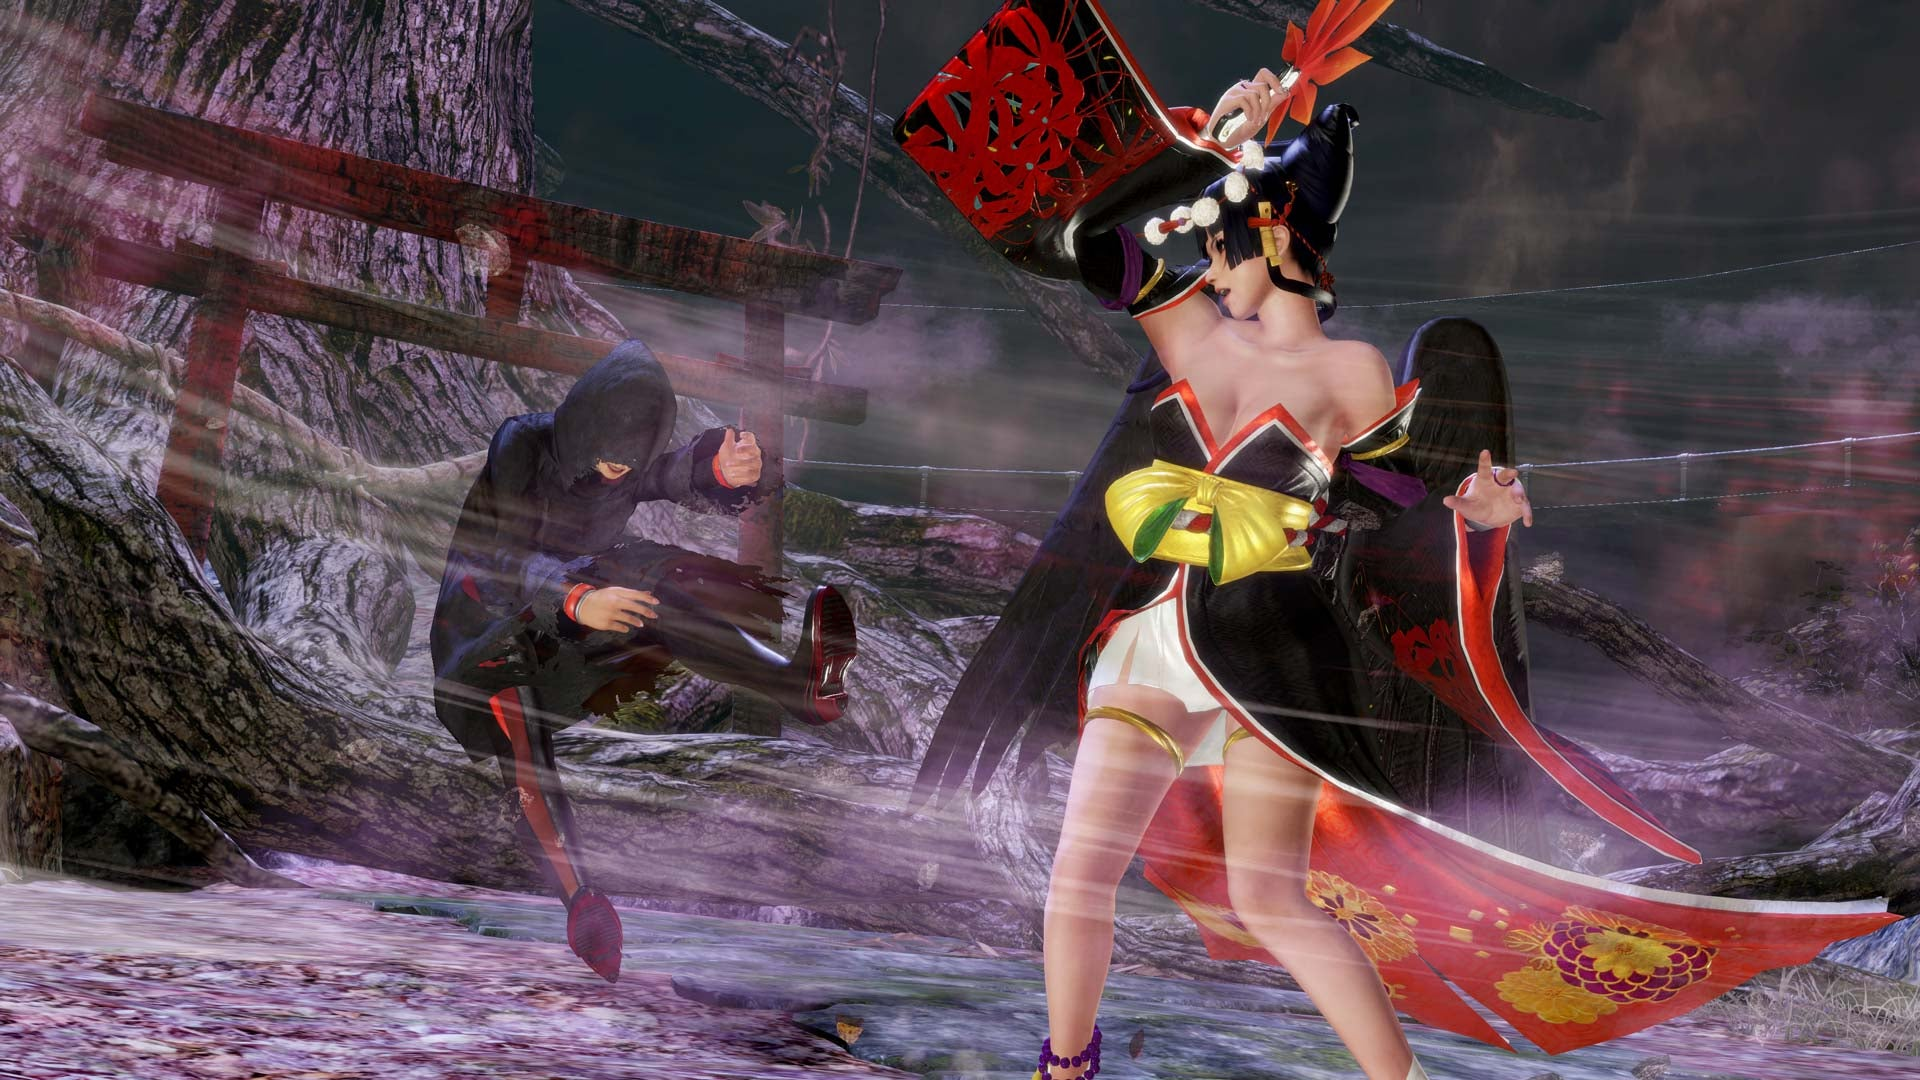 Evo Japan Cuts Sexual Dead Or Alive 6 Stream Short, Issues Apology